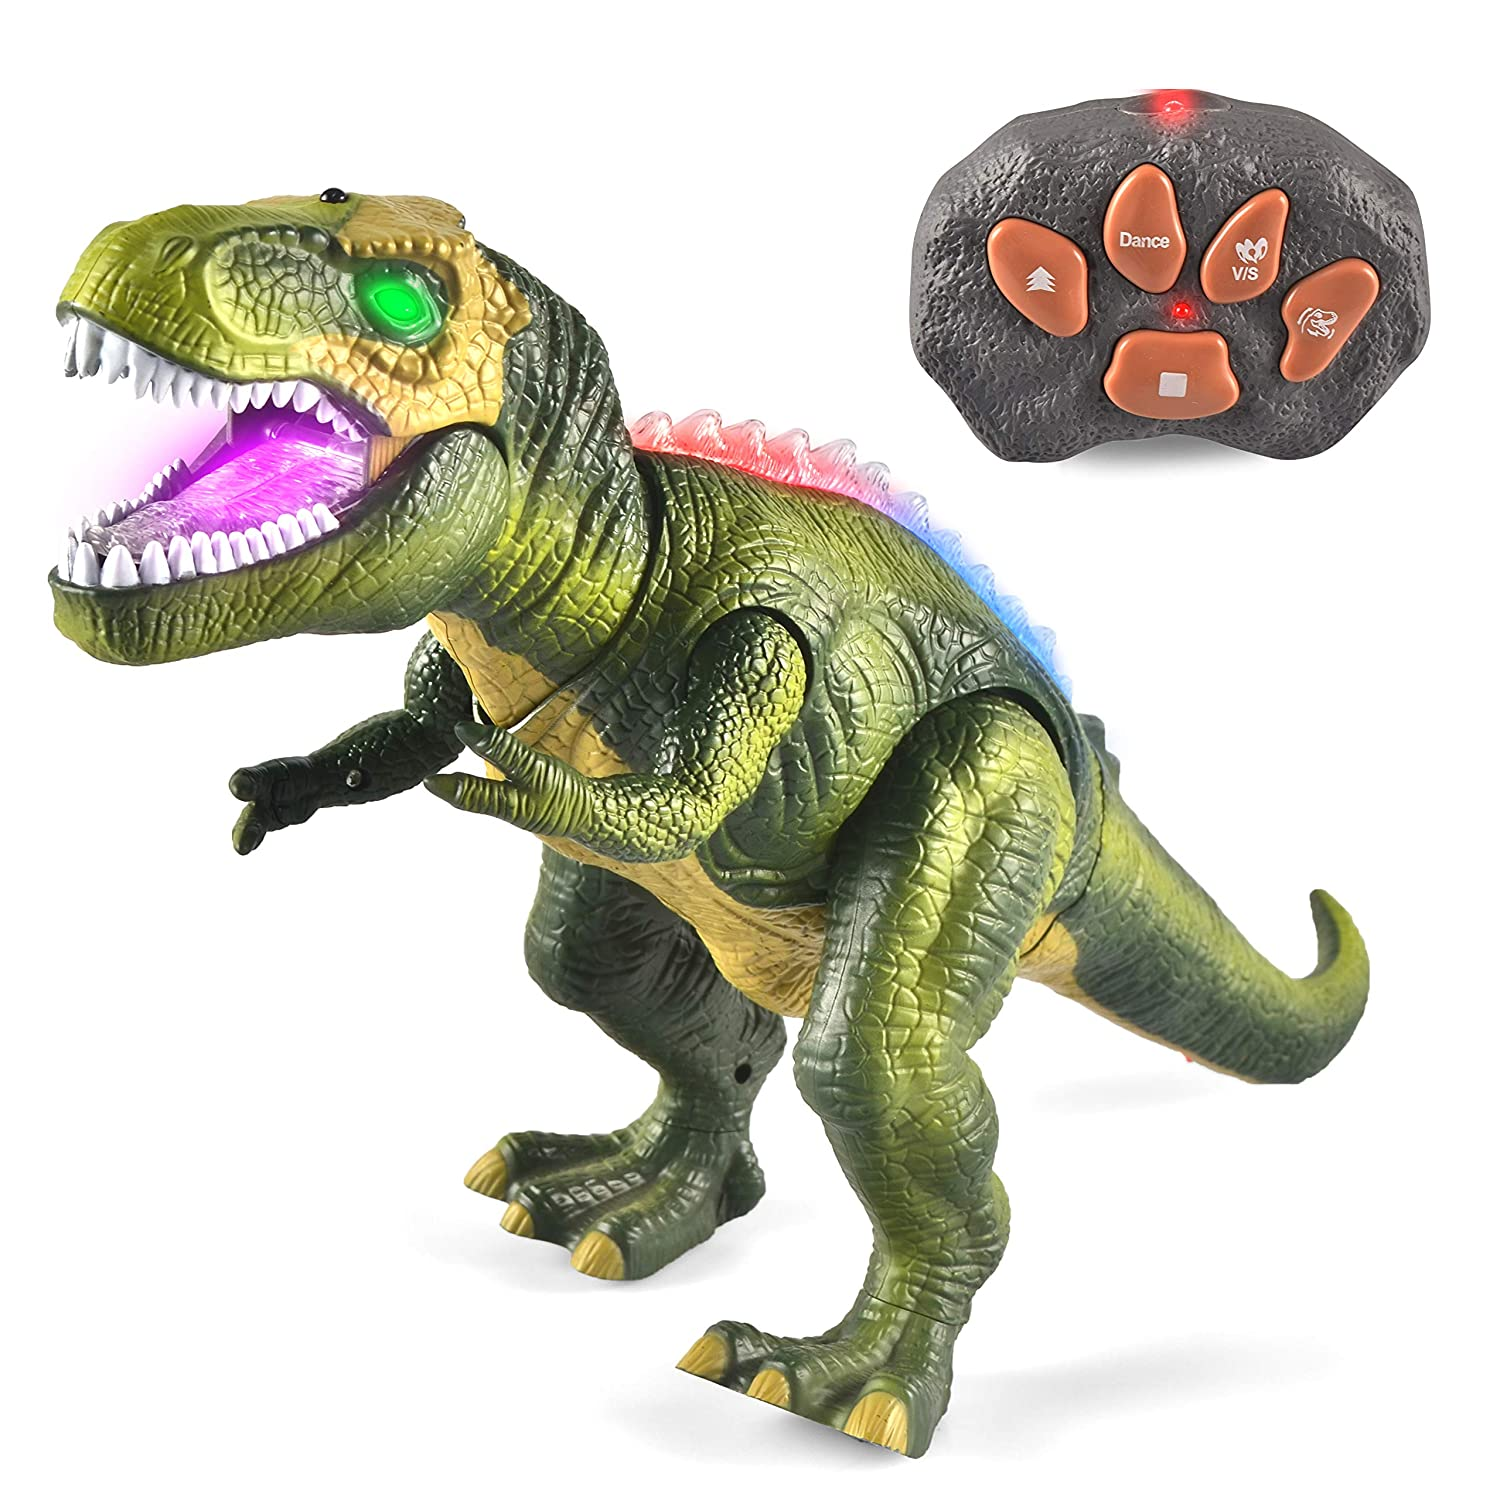 JOYIN LED Light Up Remote Control Dinosaur Walking and Roaring Realistic T Rex Dinosaur Toys with Glowing Eyes Walking Movement Shaking Head For Toddlers Boys Girls